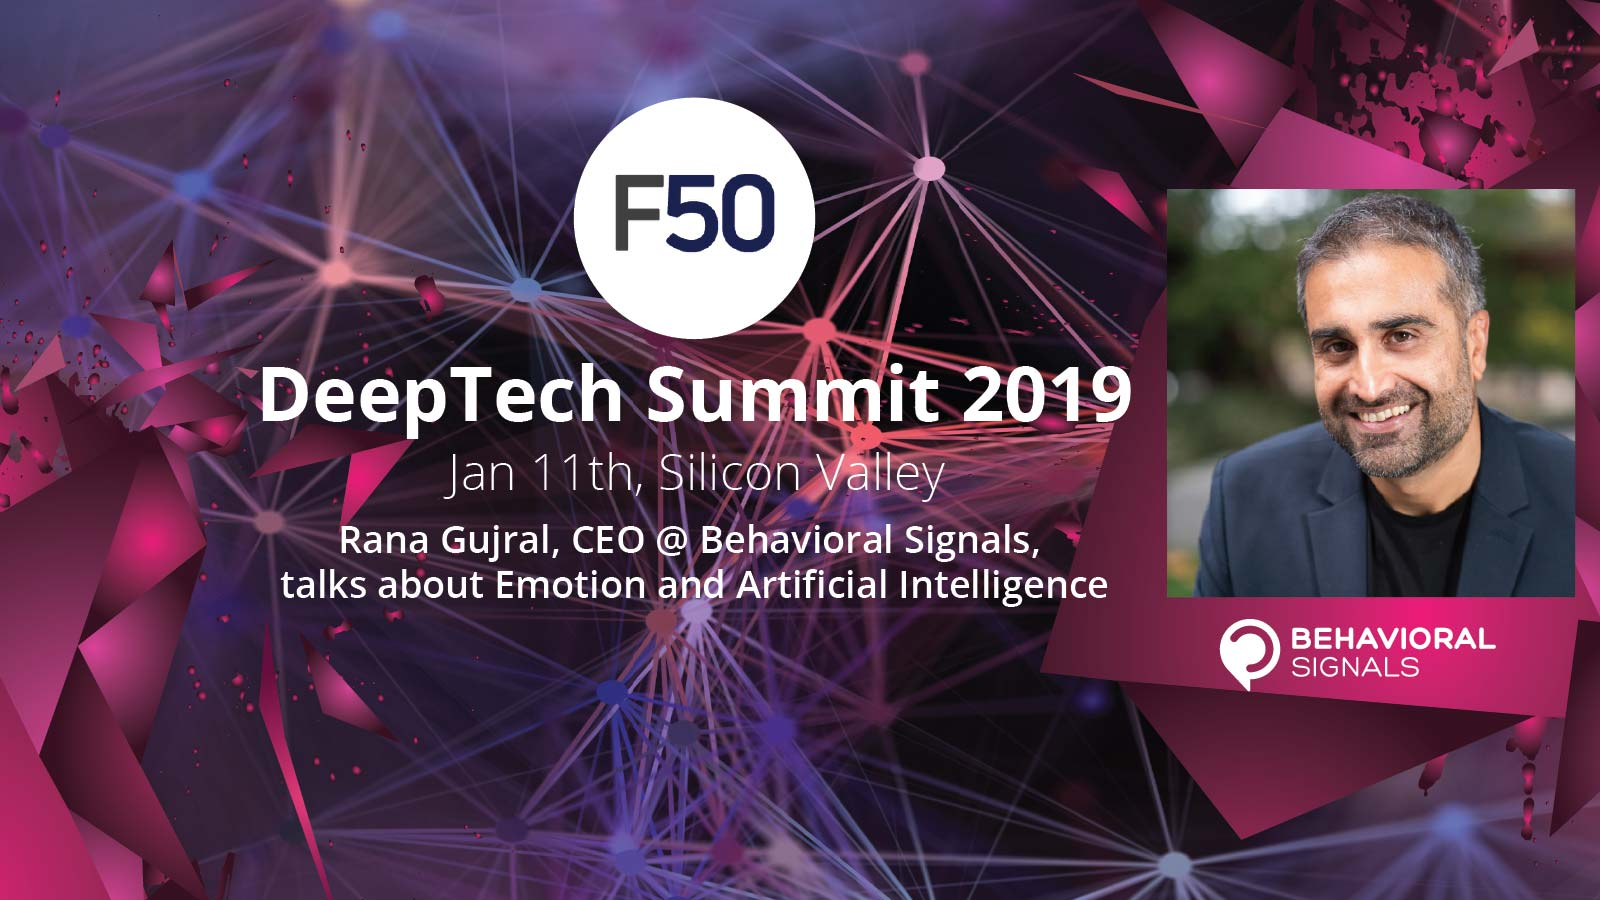 Rana Gujral speaking at DeepTech